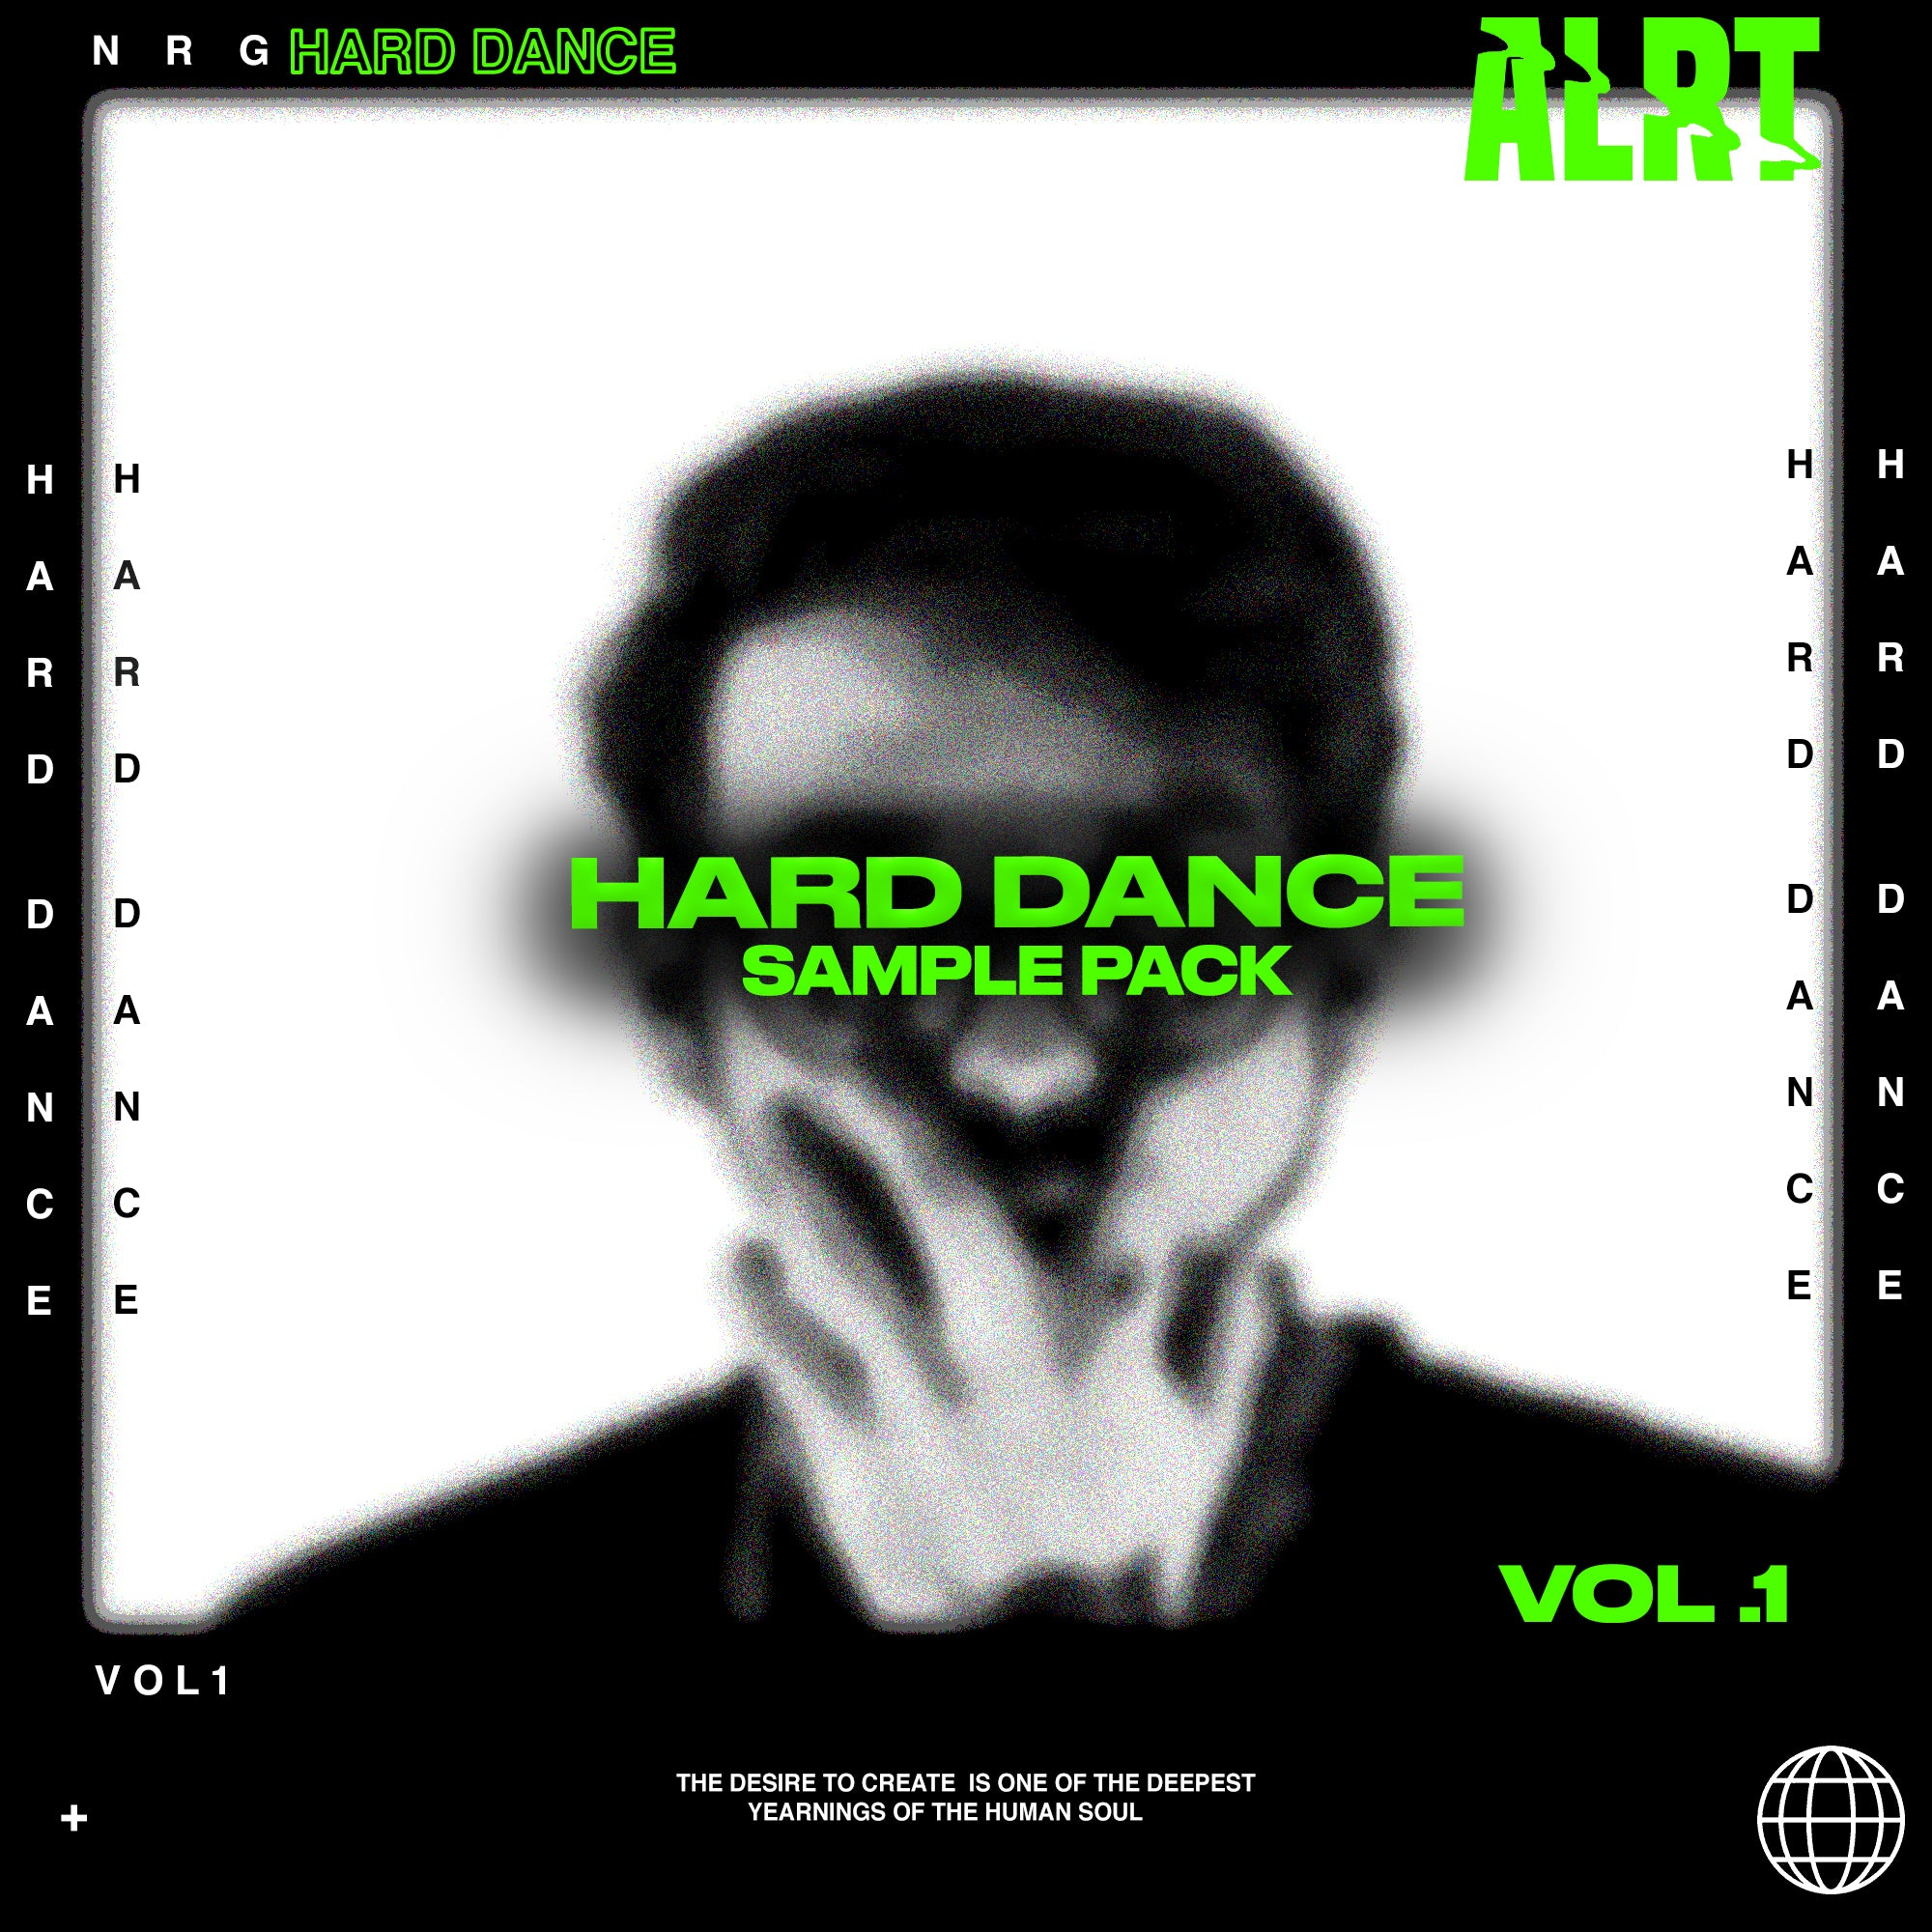 HARD DANCE VOL.1  - SAMPLE PACK - MB